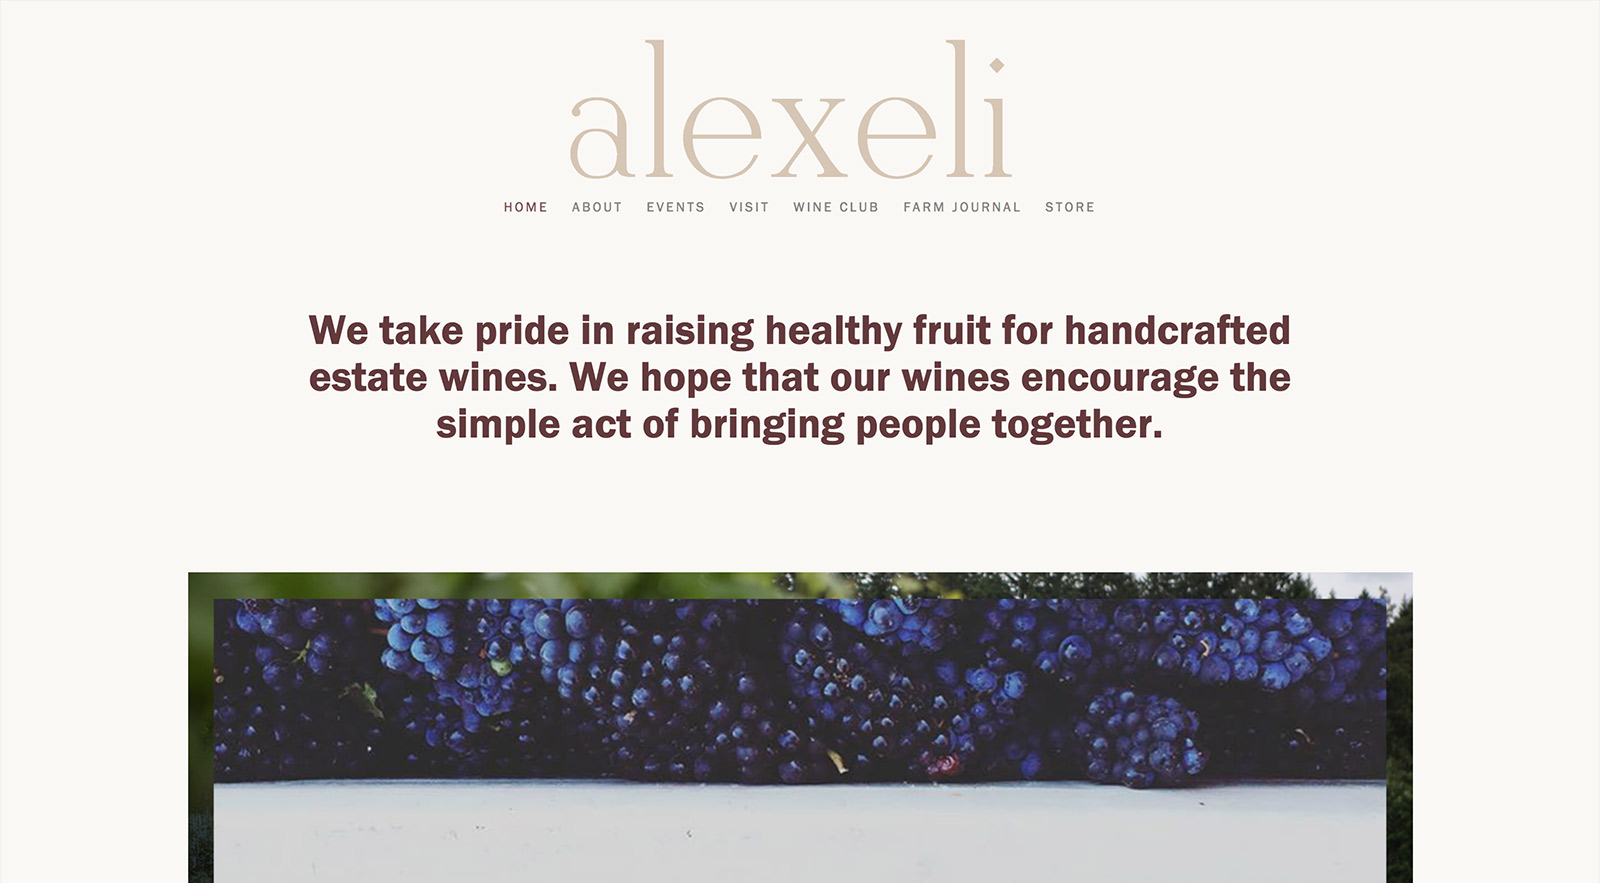 The website for Alexeli